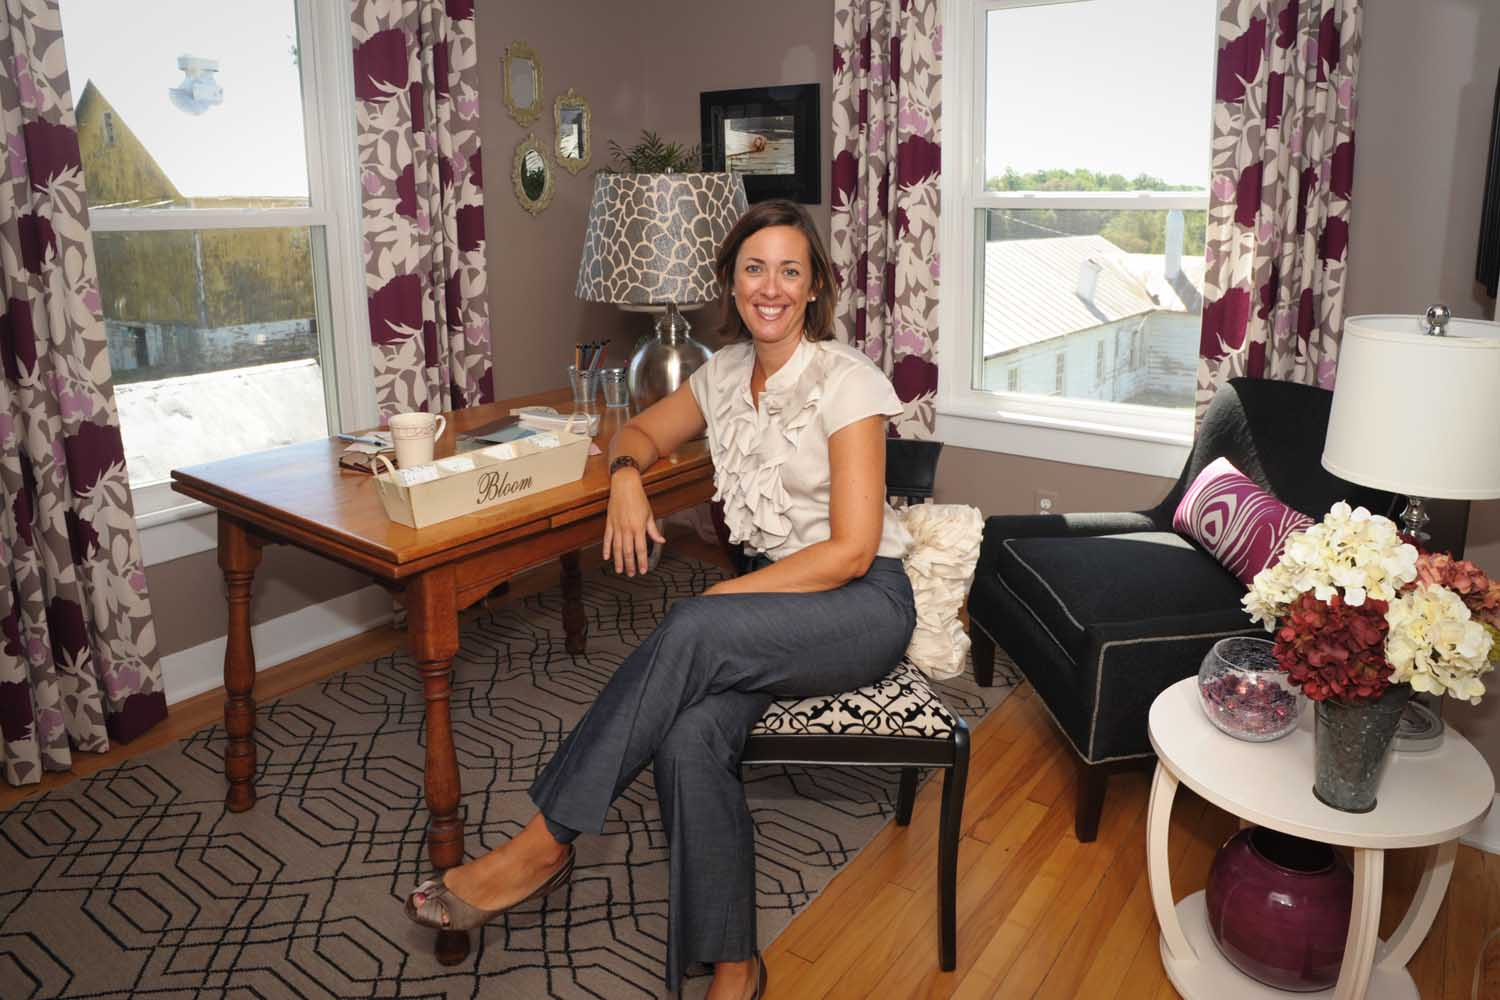 Howard County Ellicott City Decorator Show House Stylish Home Office Design After – Designer Bestie April Force Pardoe Interiors.jpg